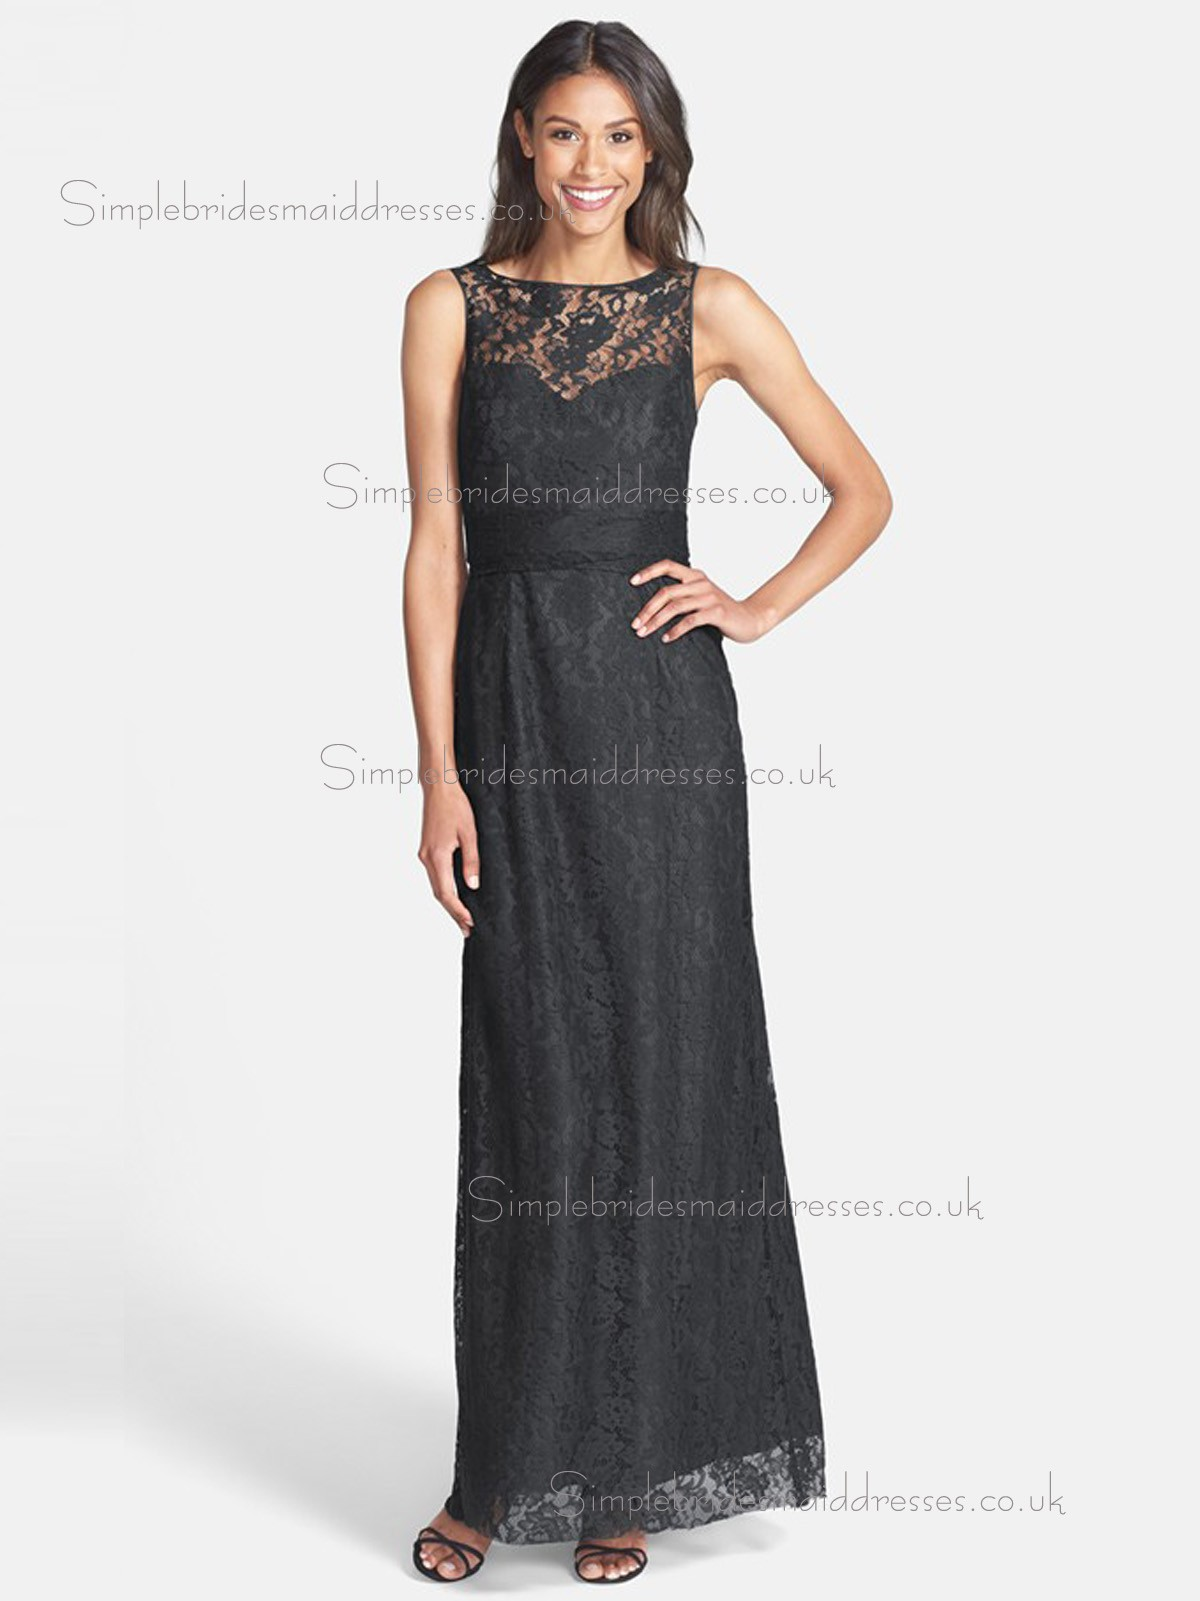 Black Applique Bridesmaid Dresses